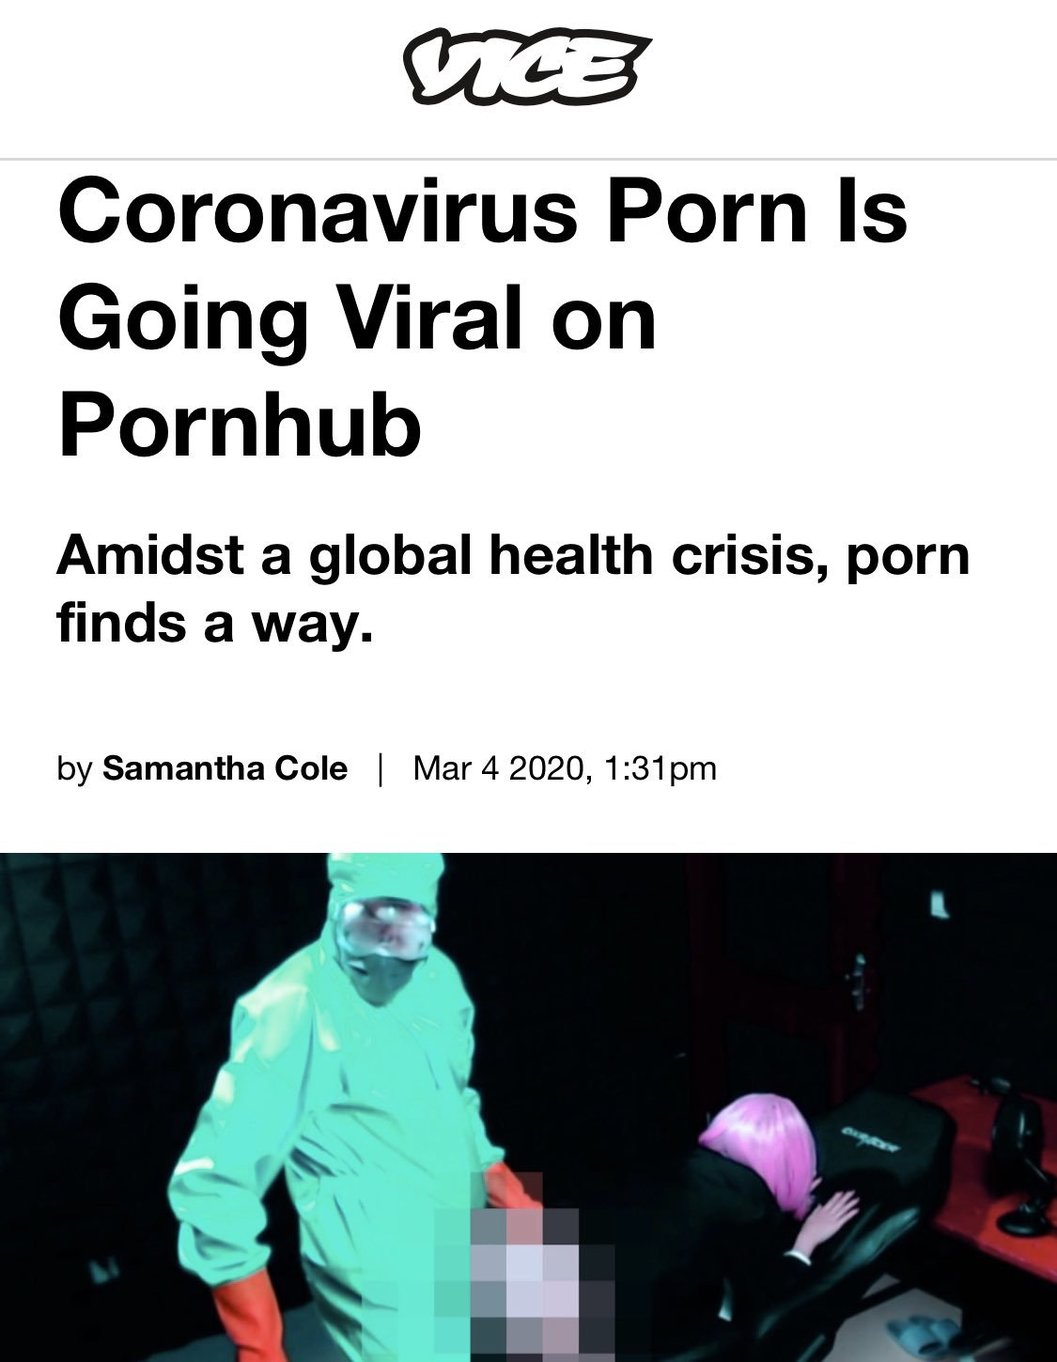 Coronavirus-Porn is going viral on Pornhub.